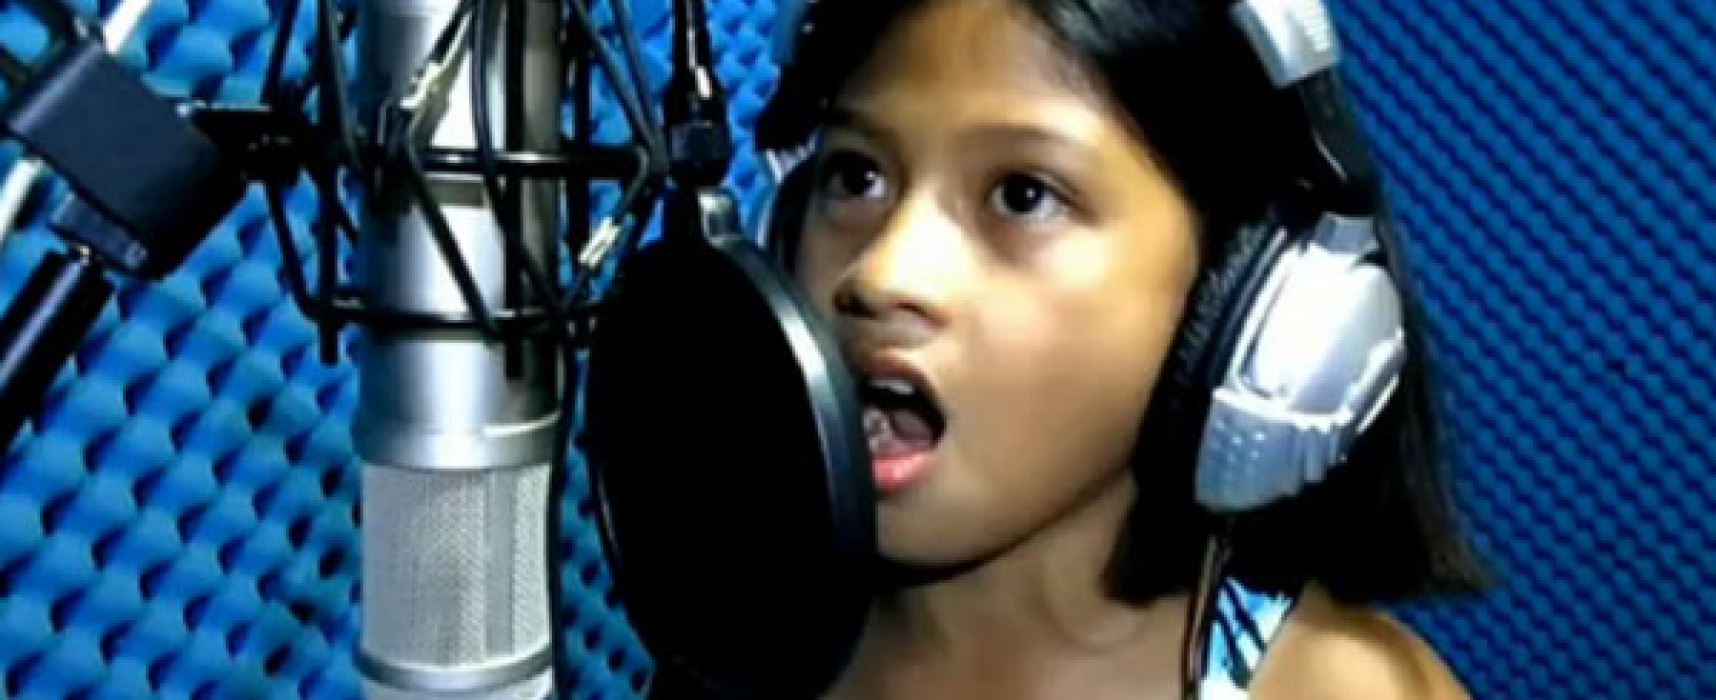 You Just Can't Guess Her Age From Her Powerful Voice